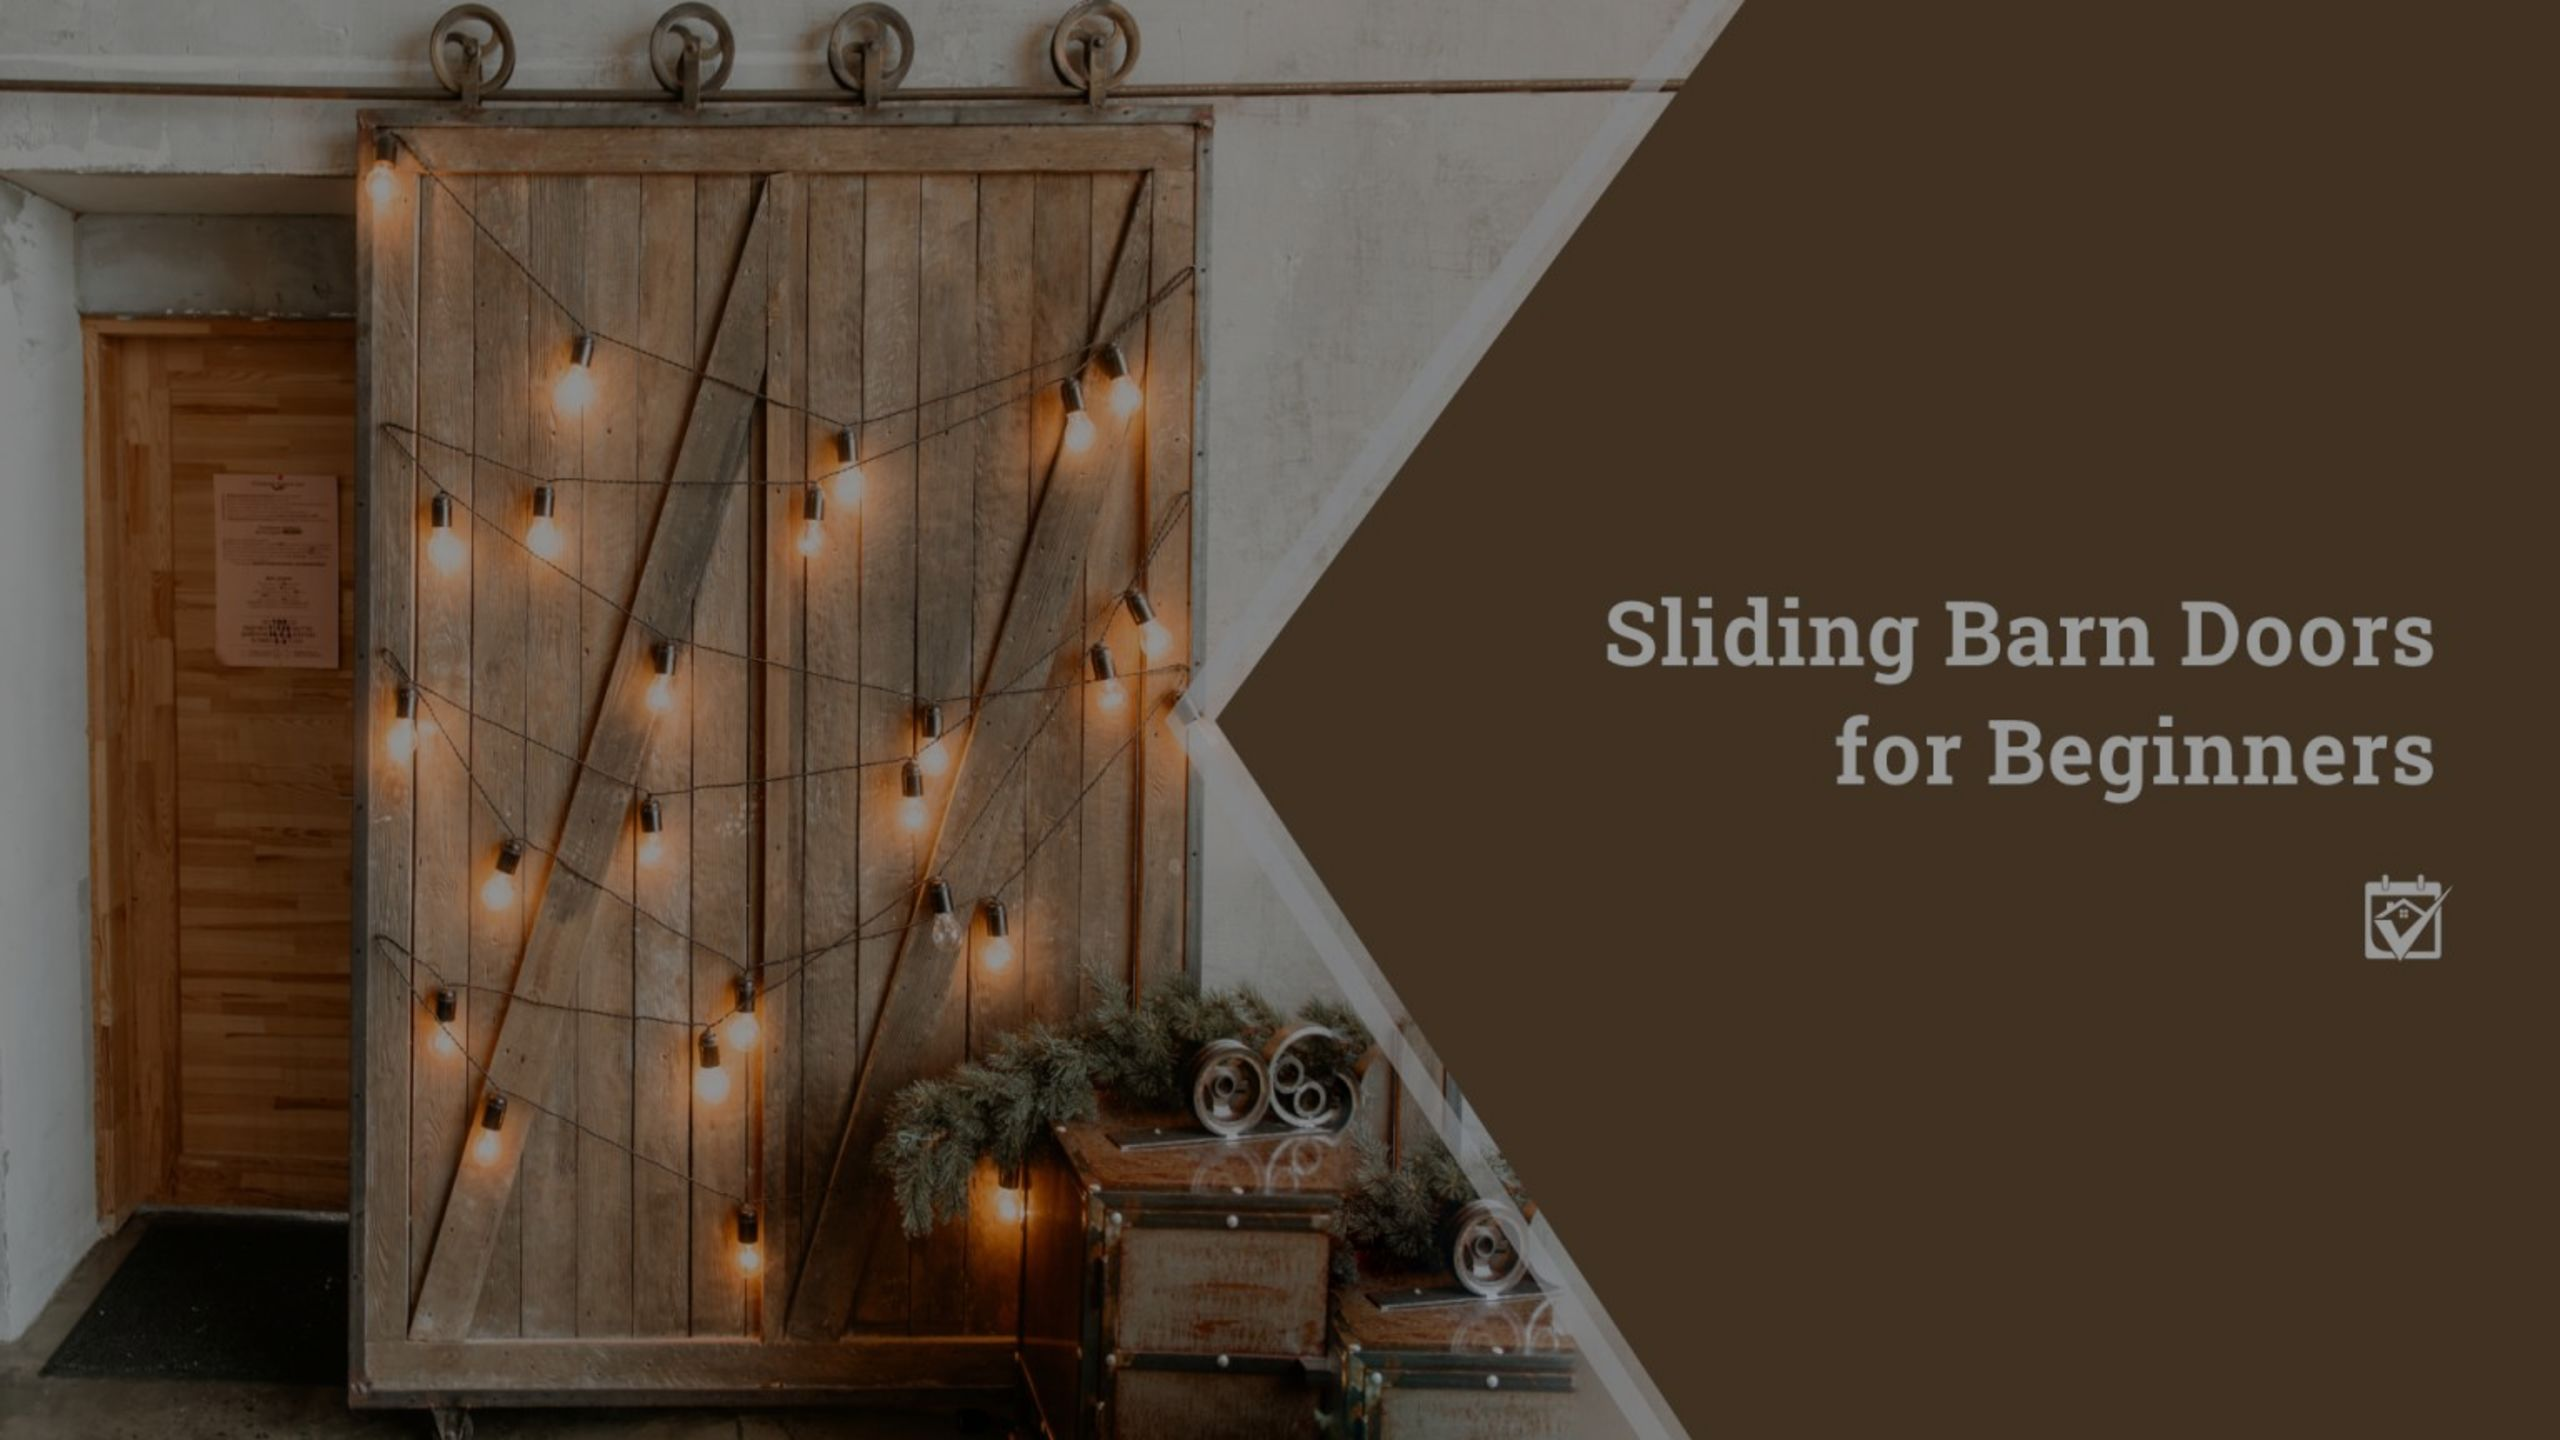 Sliding Barn Doors for Beginners